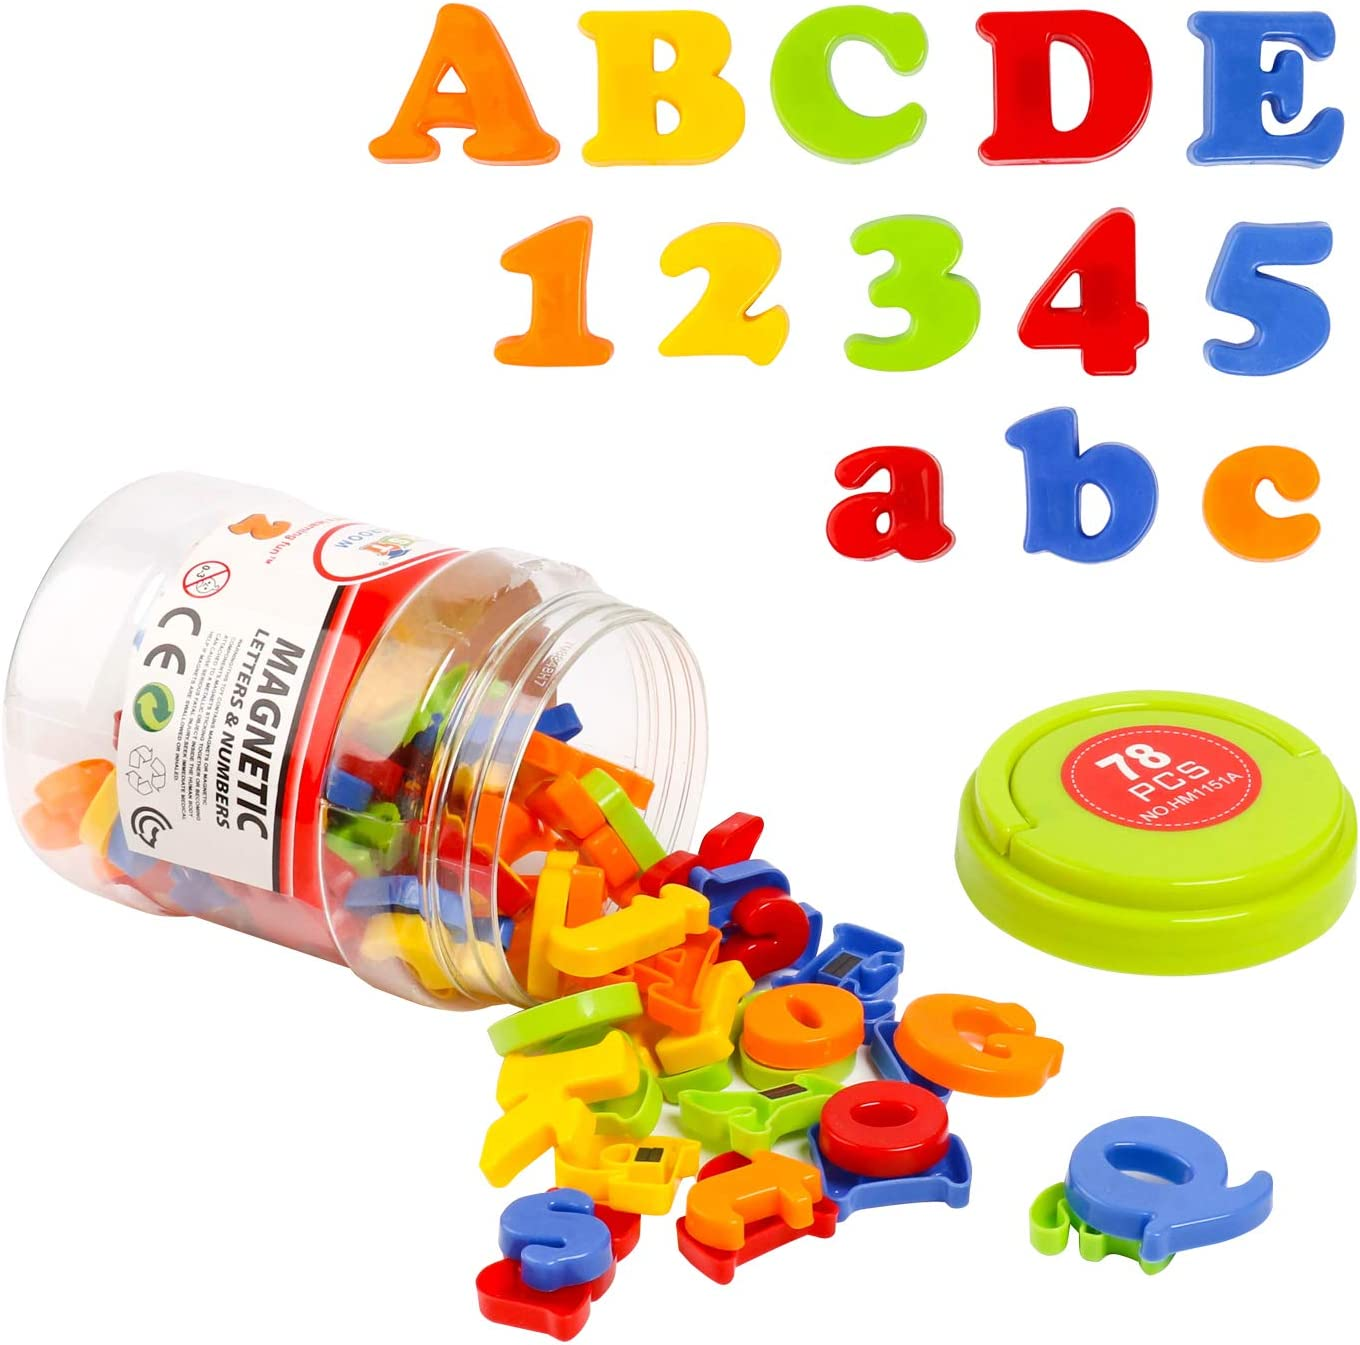 HOONEW Magnetic Letters Numbers Alphabet Plastic ABC 123 Fridge Magnets for Vocabulary Educational Toy Set Preschool Learning Spelling Counting Includes Uppercase Lowercase Math Symbols for Toddlers